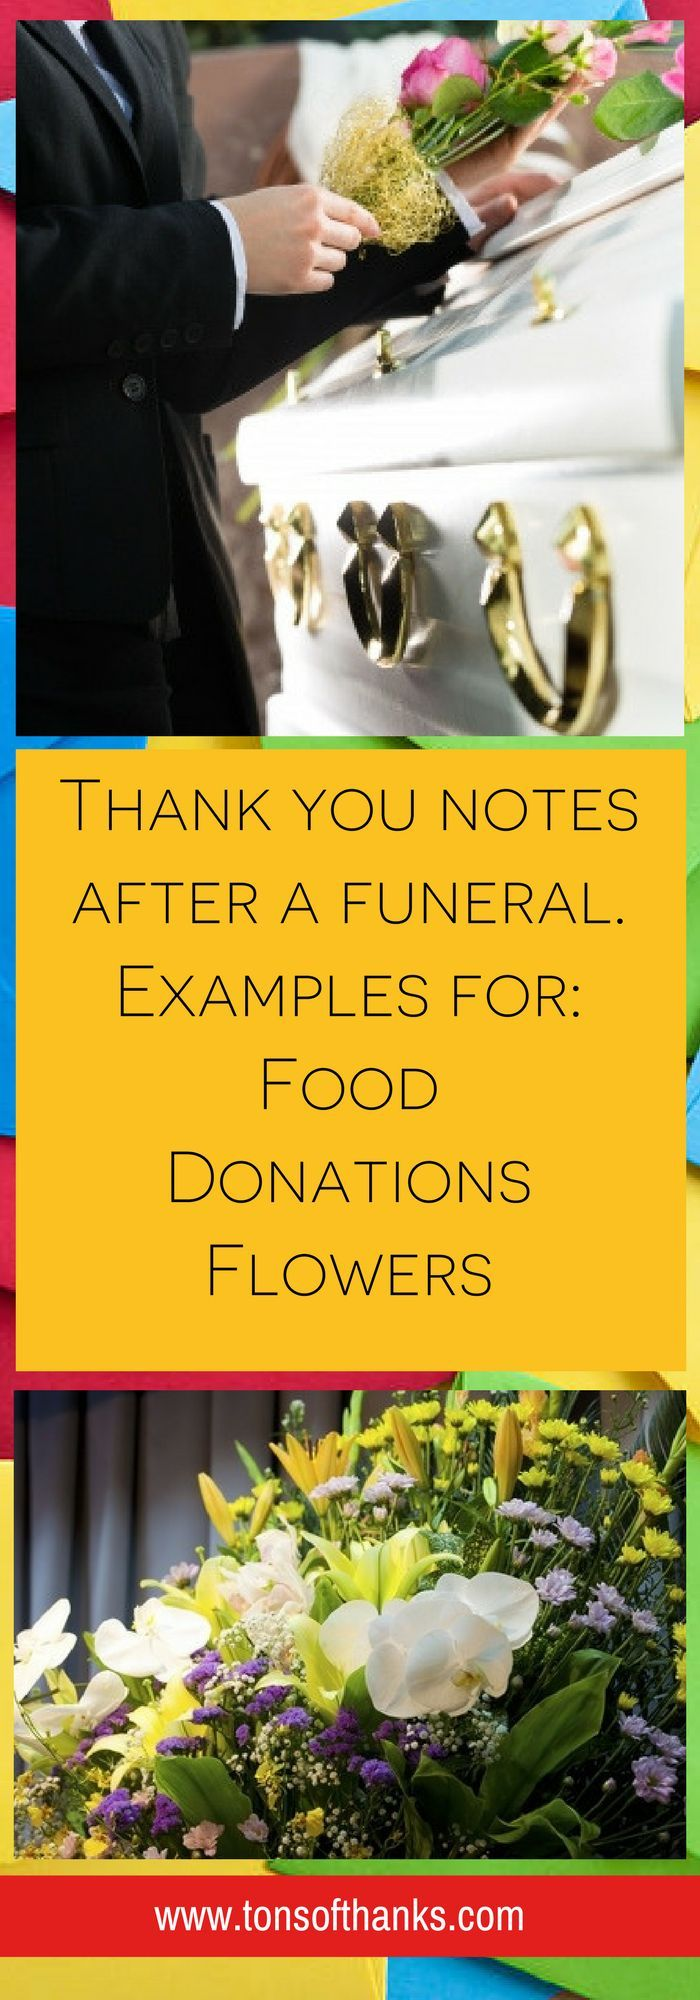 Thank you note wording examples for after funeral for flowers thank you note wording examples for after funeral for flowers donations and food examples izmirmasajfo Images